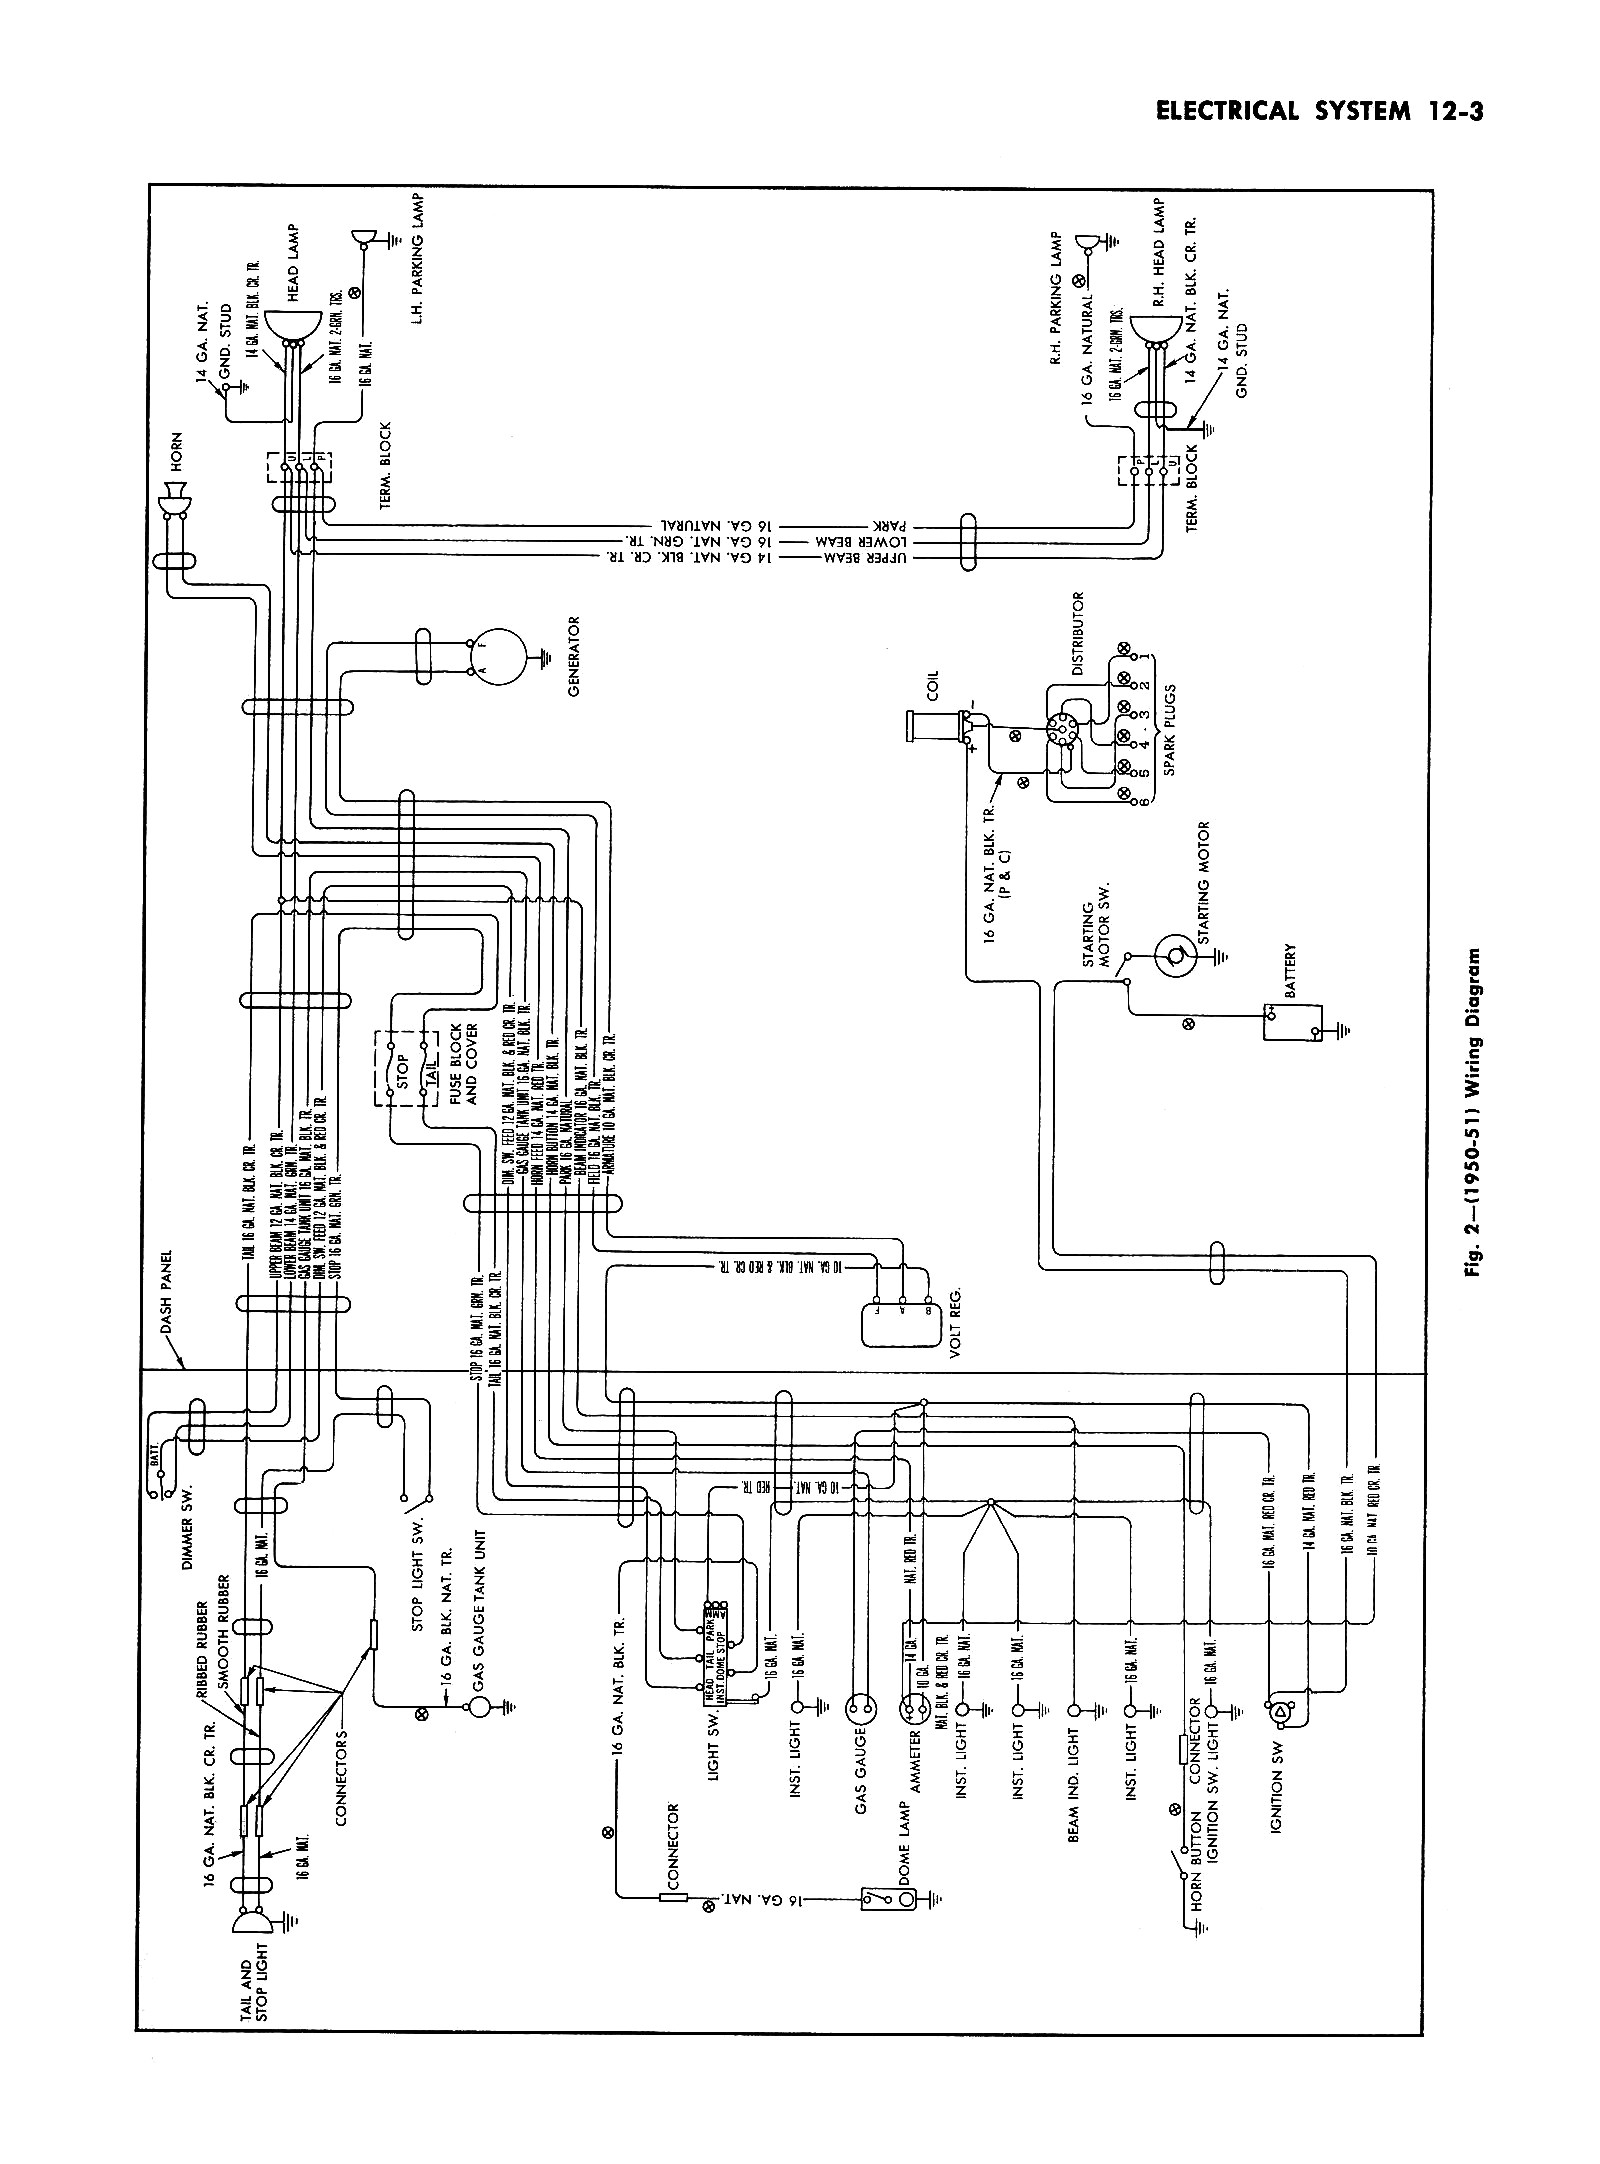 1930 Ford Coupe Wiring Diagram on 1941 Ford Radio